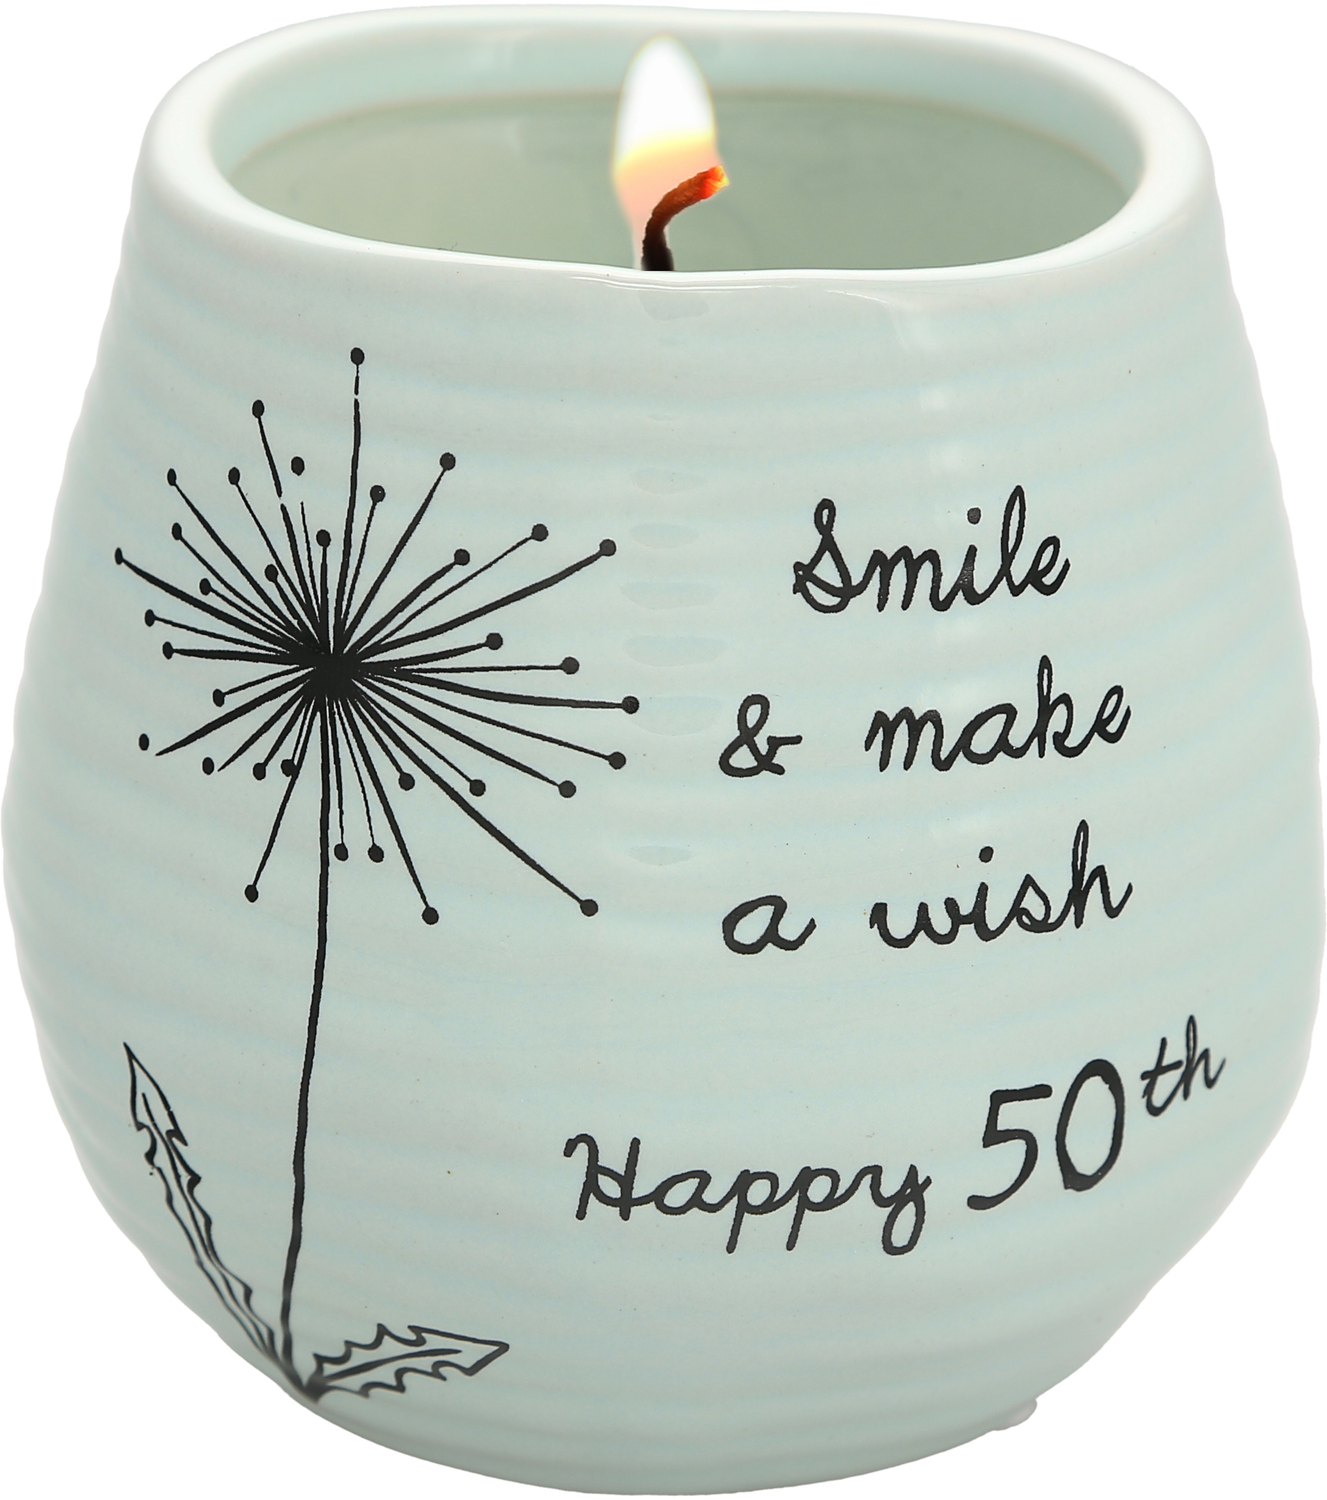 Happy 50th by Dandelion Wishes - Happy 50th - 8 oz - 100% Soy Wax Candle Scent: Serenity